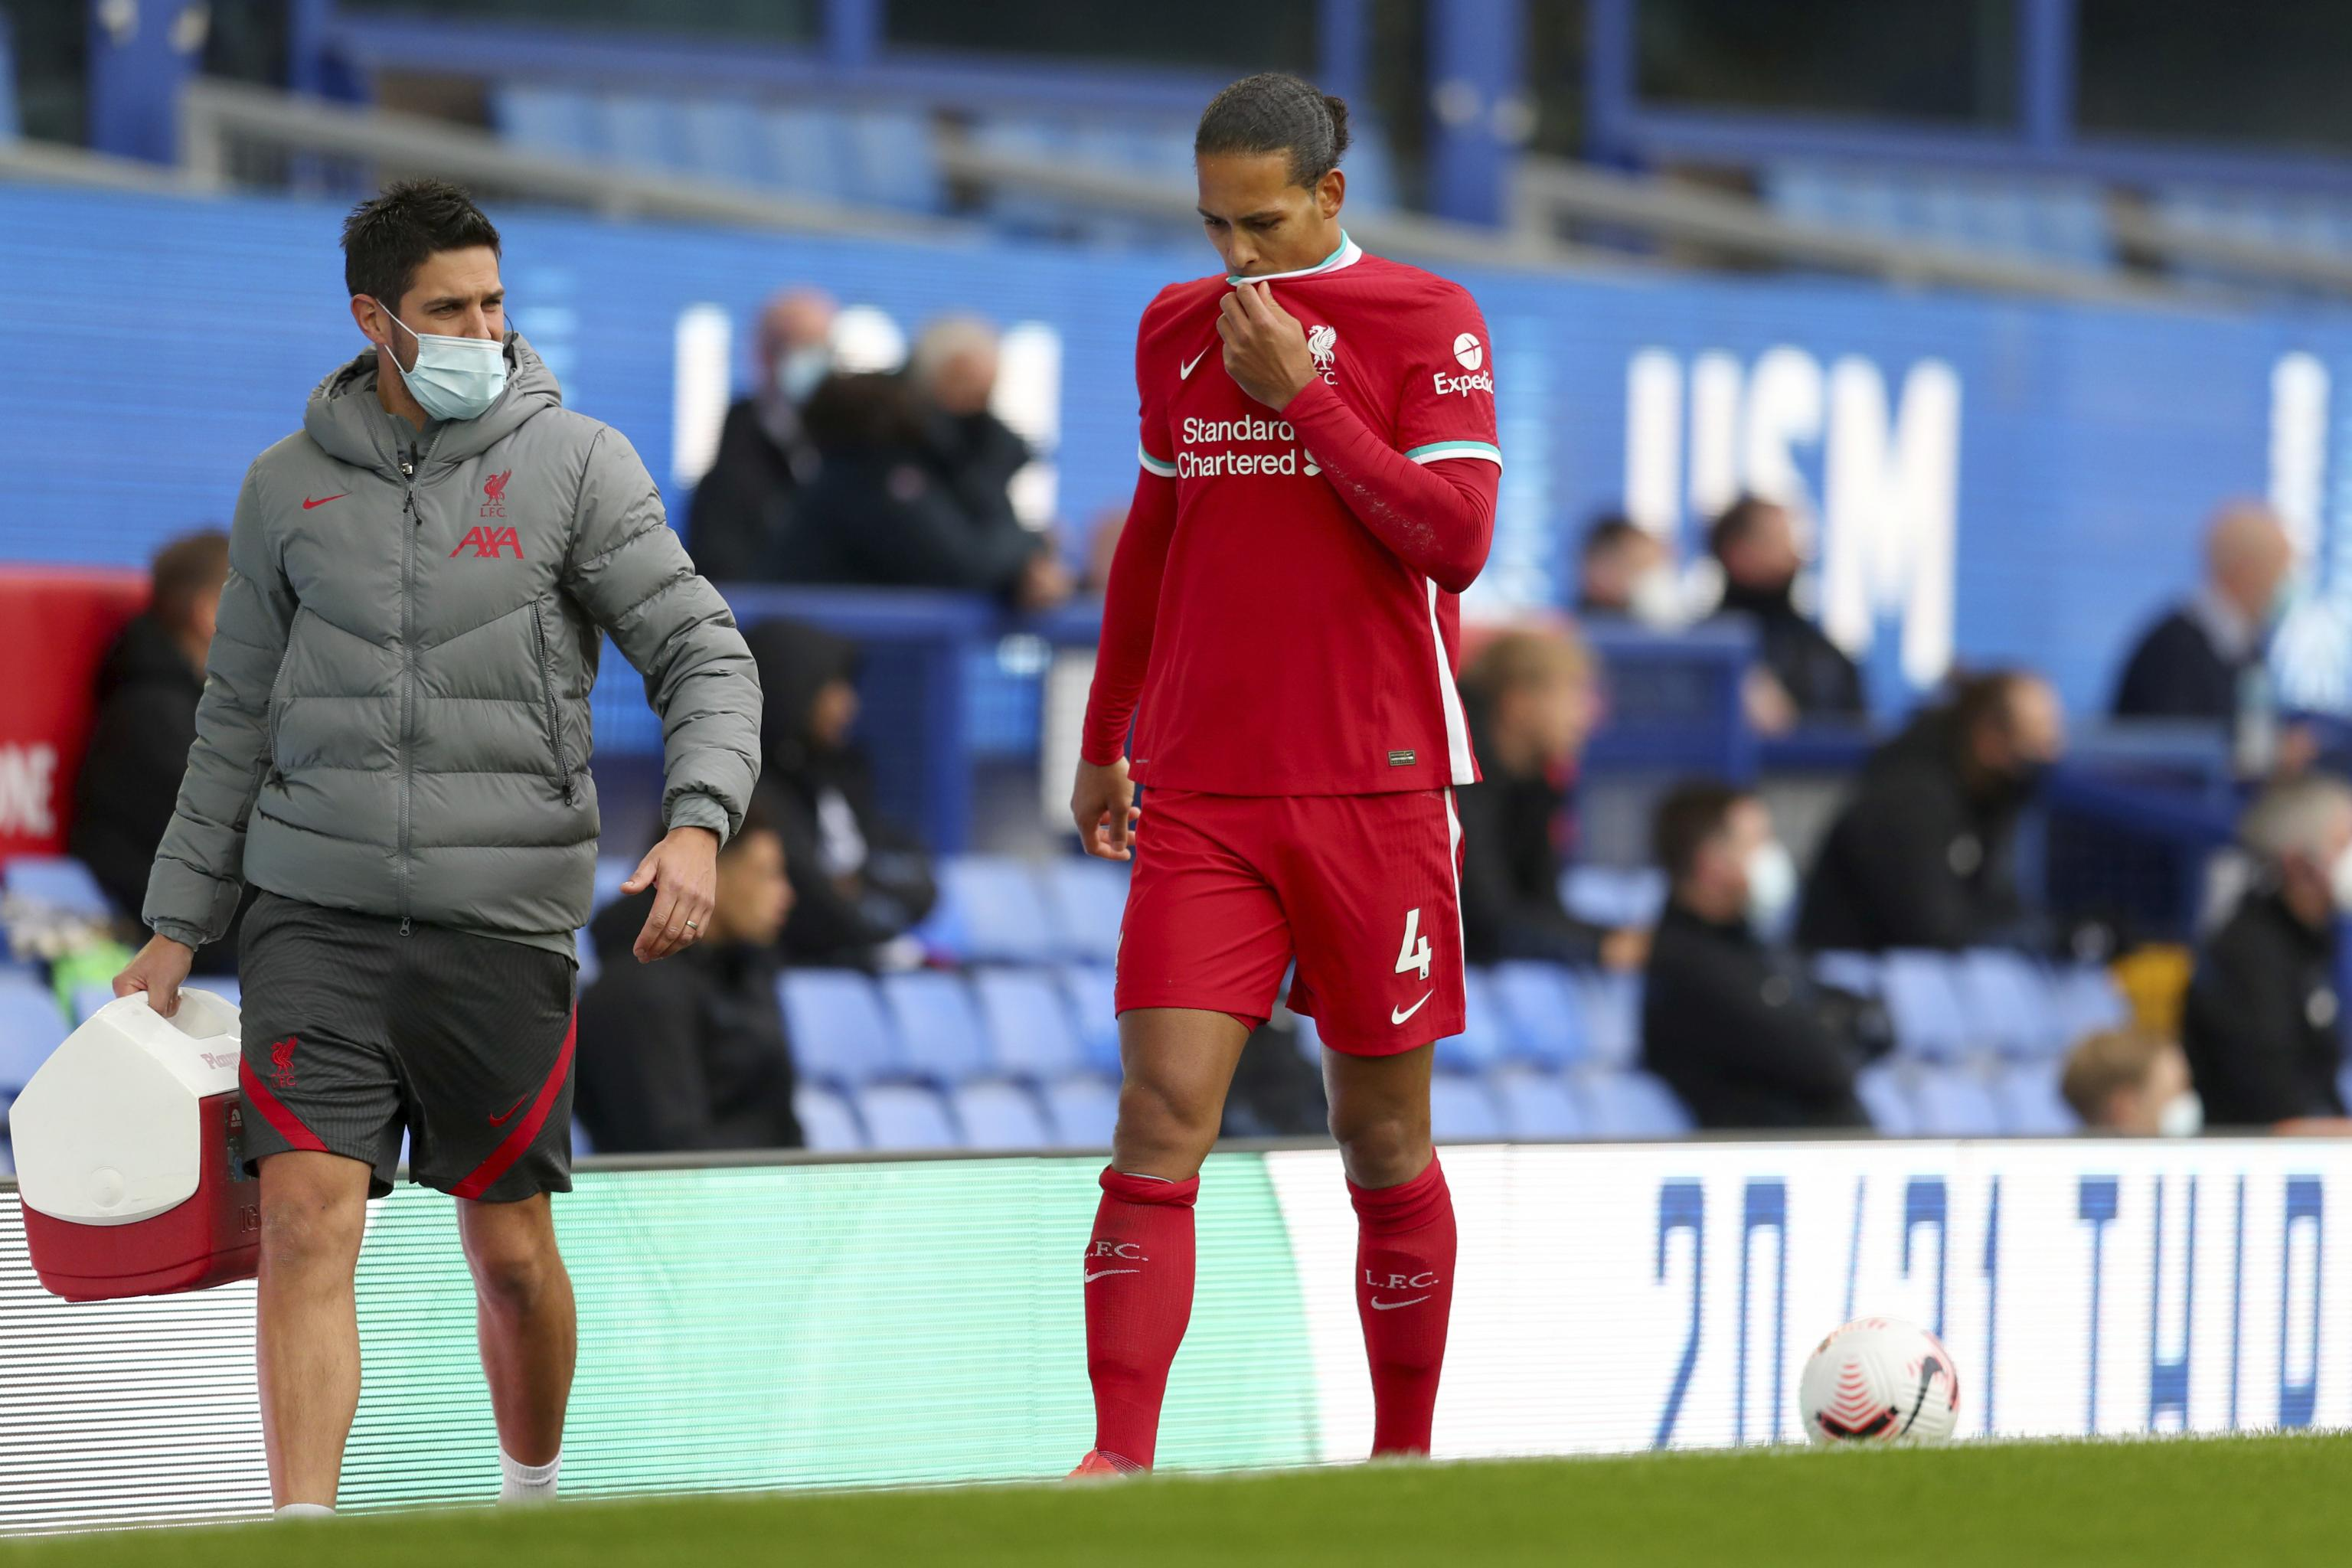 Liverpool's Virgil Van Dijk to Have Surgery on Knee Injury; No Return Timetable | Bleacher Report | Latest News, Videos and Highlights